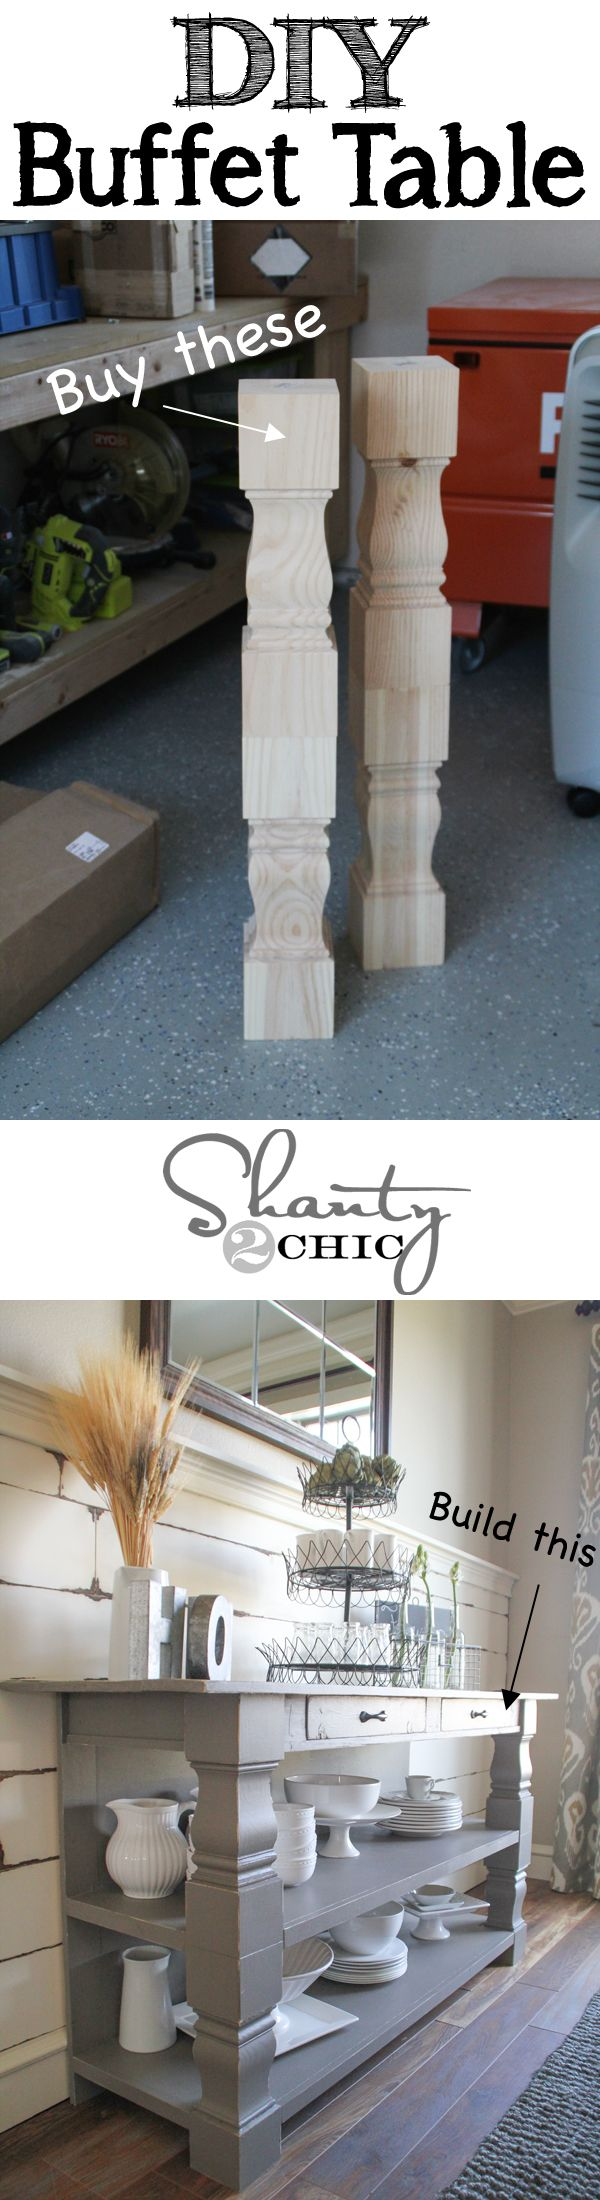 FREE and Easy DIY Furniture Project Plan from Shanty2Chic: Learn How to Build a Buffet Table // Shanty-2-Chic.com